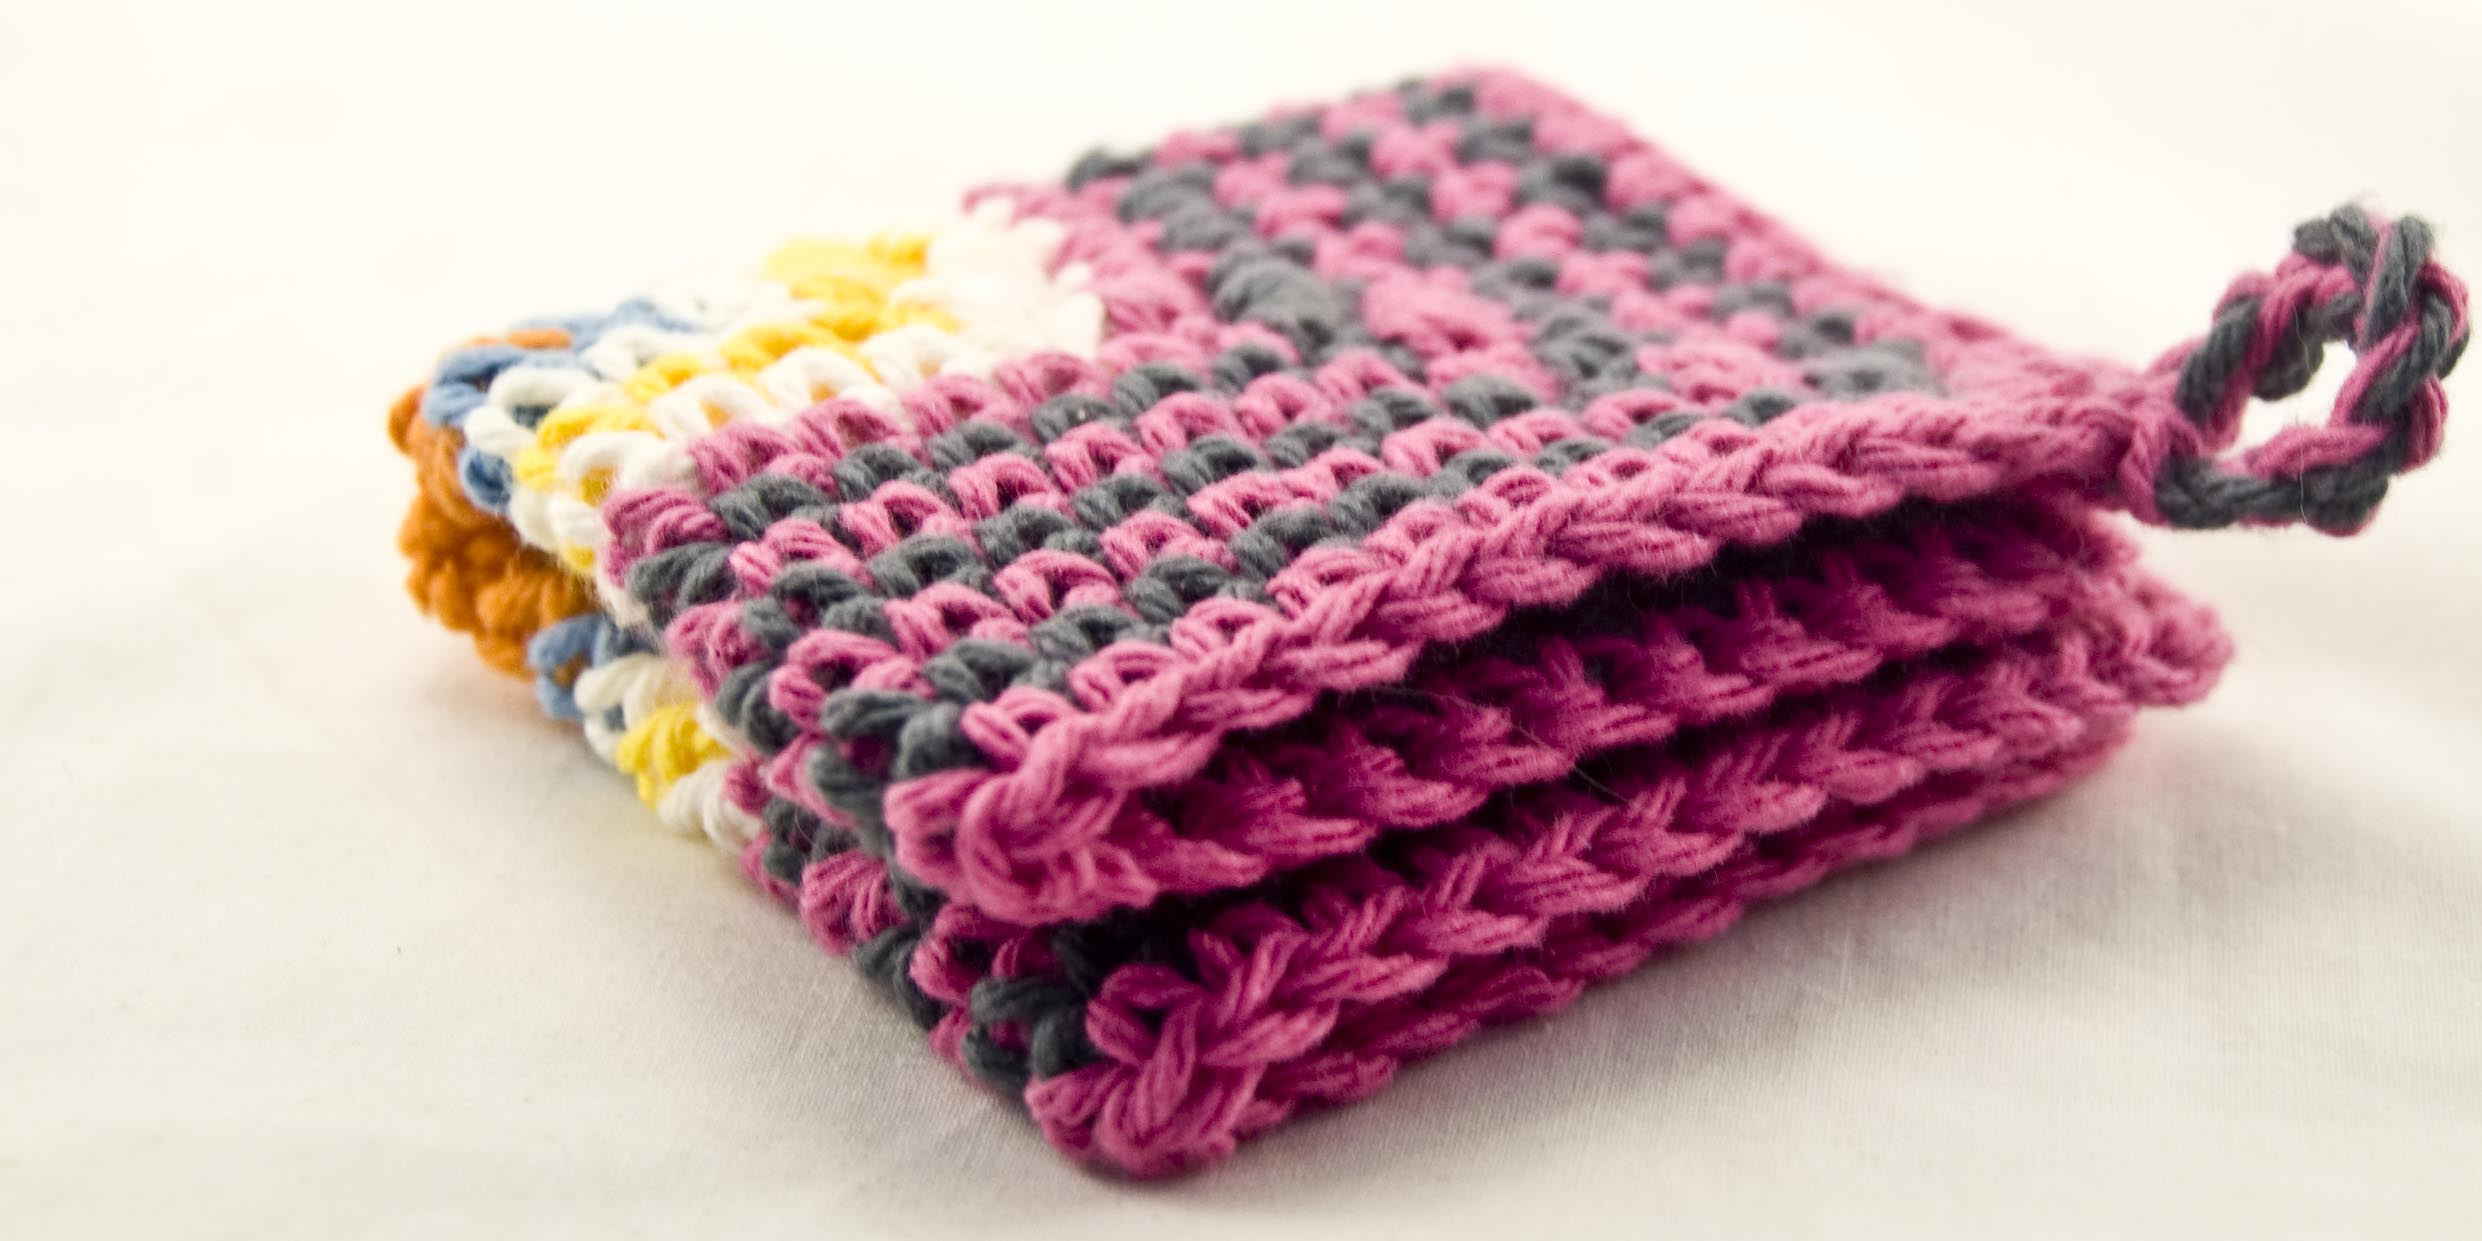 Crocheting Dishcloths : FREE CROCHETED DISH CLOTH PATTERN - Easy Crochet Patterns